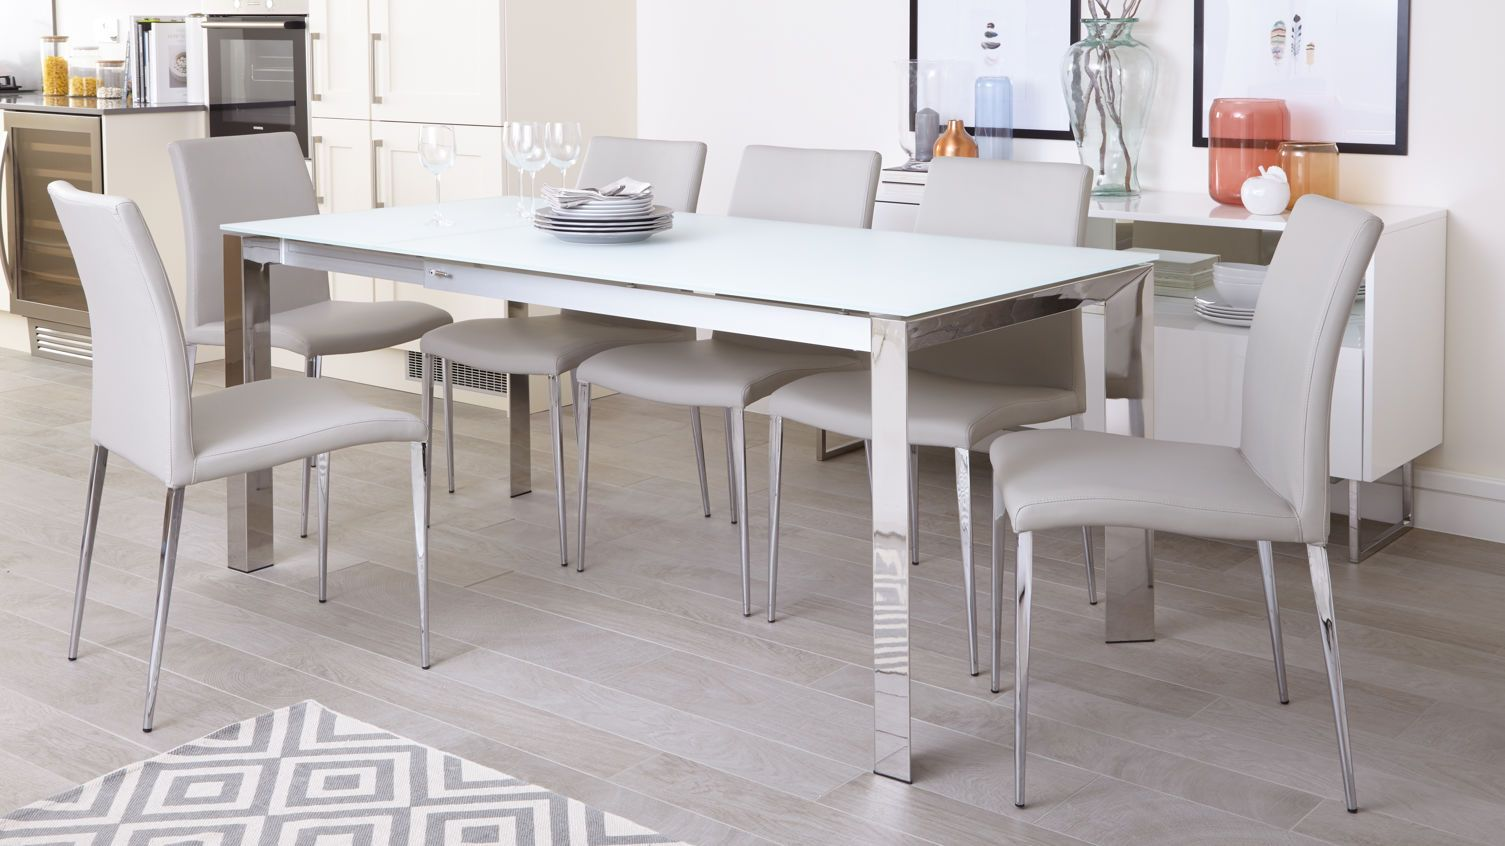 Eve White Frosted Gl With Chrome And Elise Dining Set From Danetti